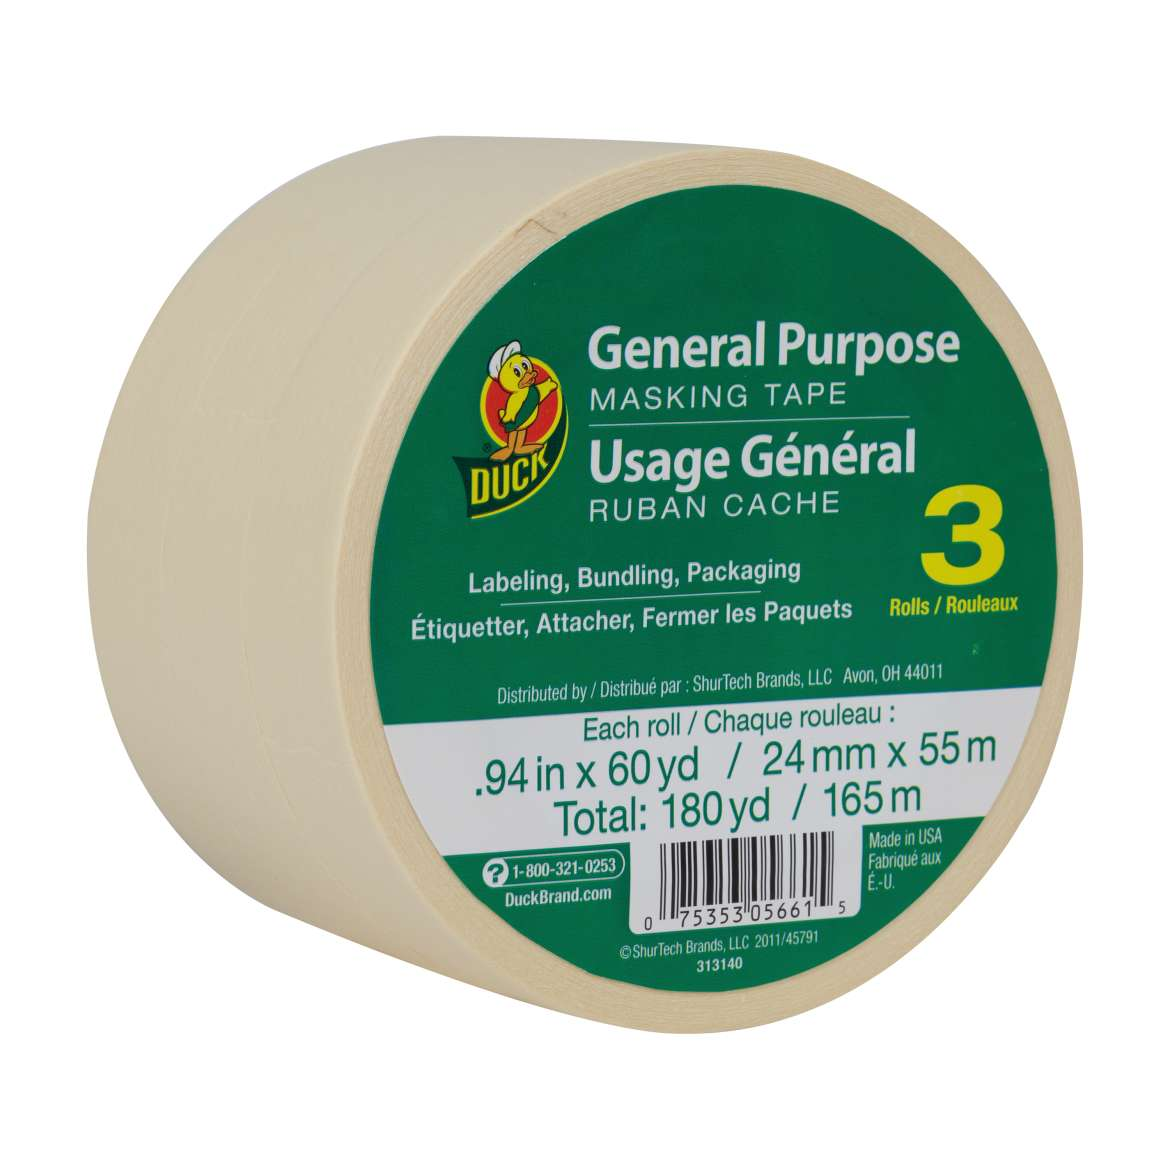 Duck® Brand General Purpose Masking Tape - Beige, 3 pk, .94 in. x 60 yd. Image